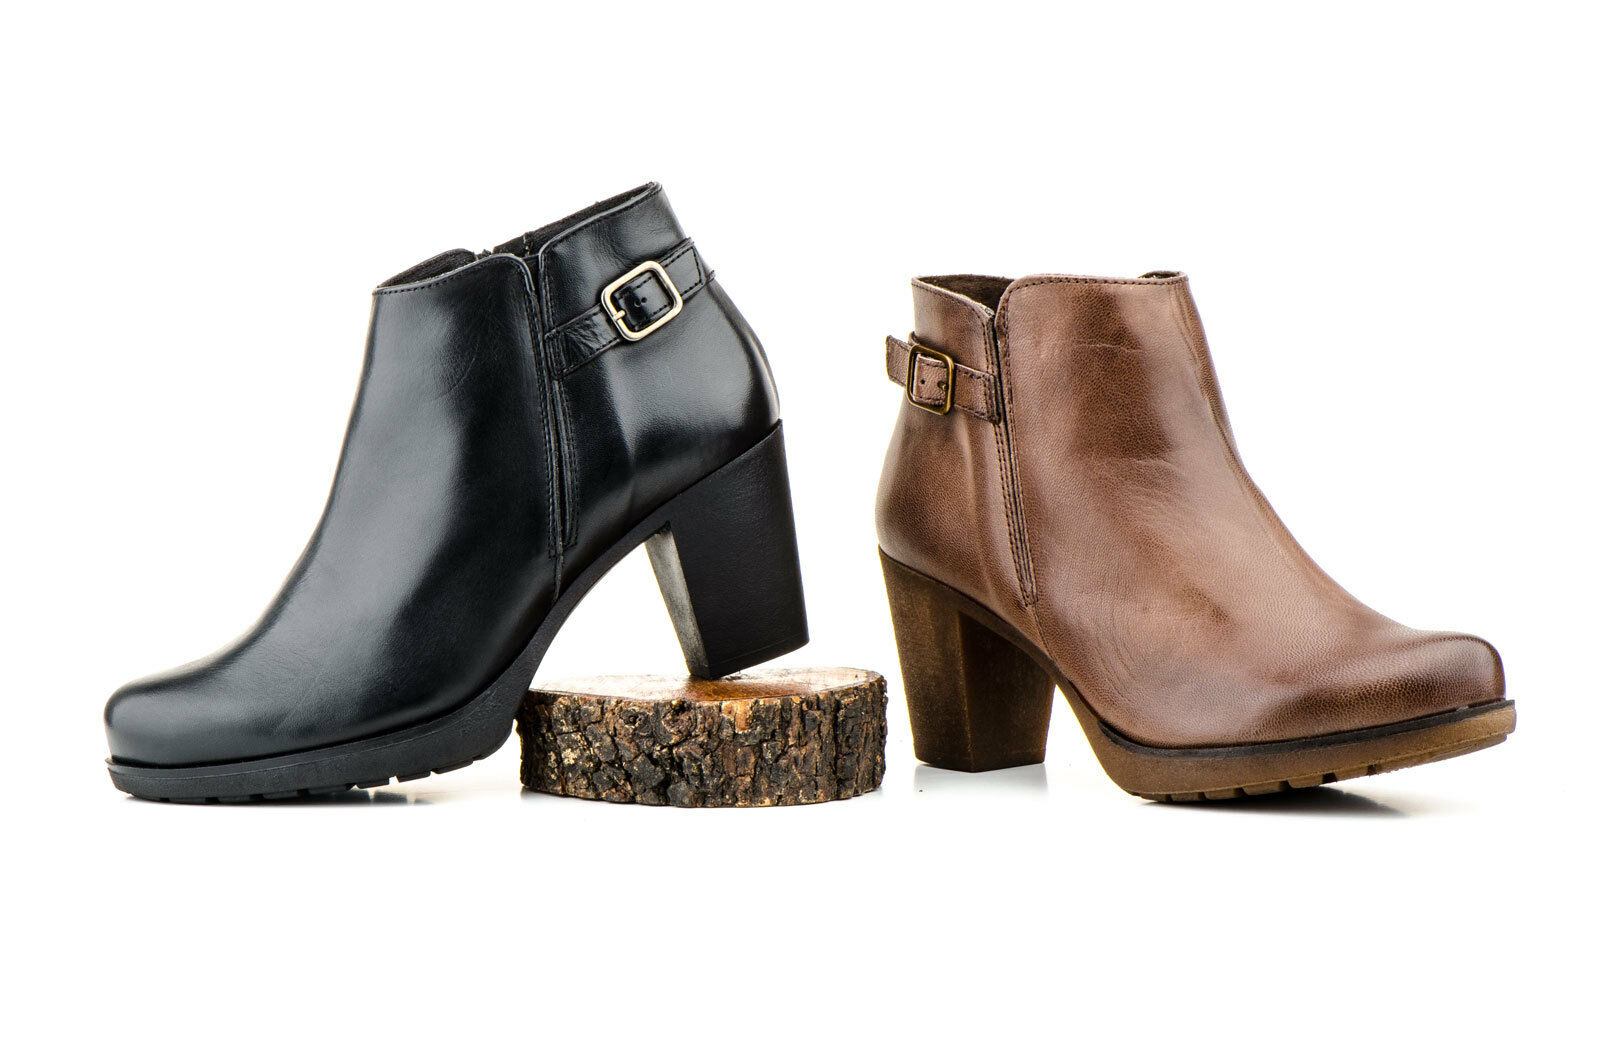 Ankle boots Leather for women Black with Buckle Black women Brown Size 36 37 38 39 40 41 3d111b